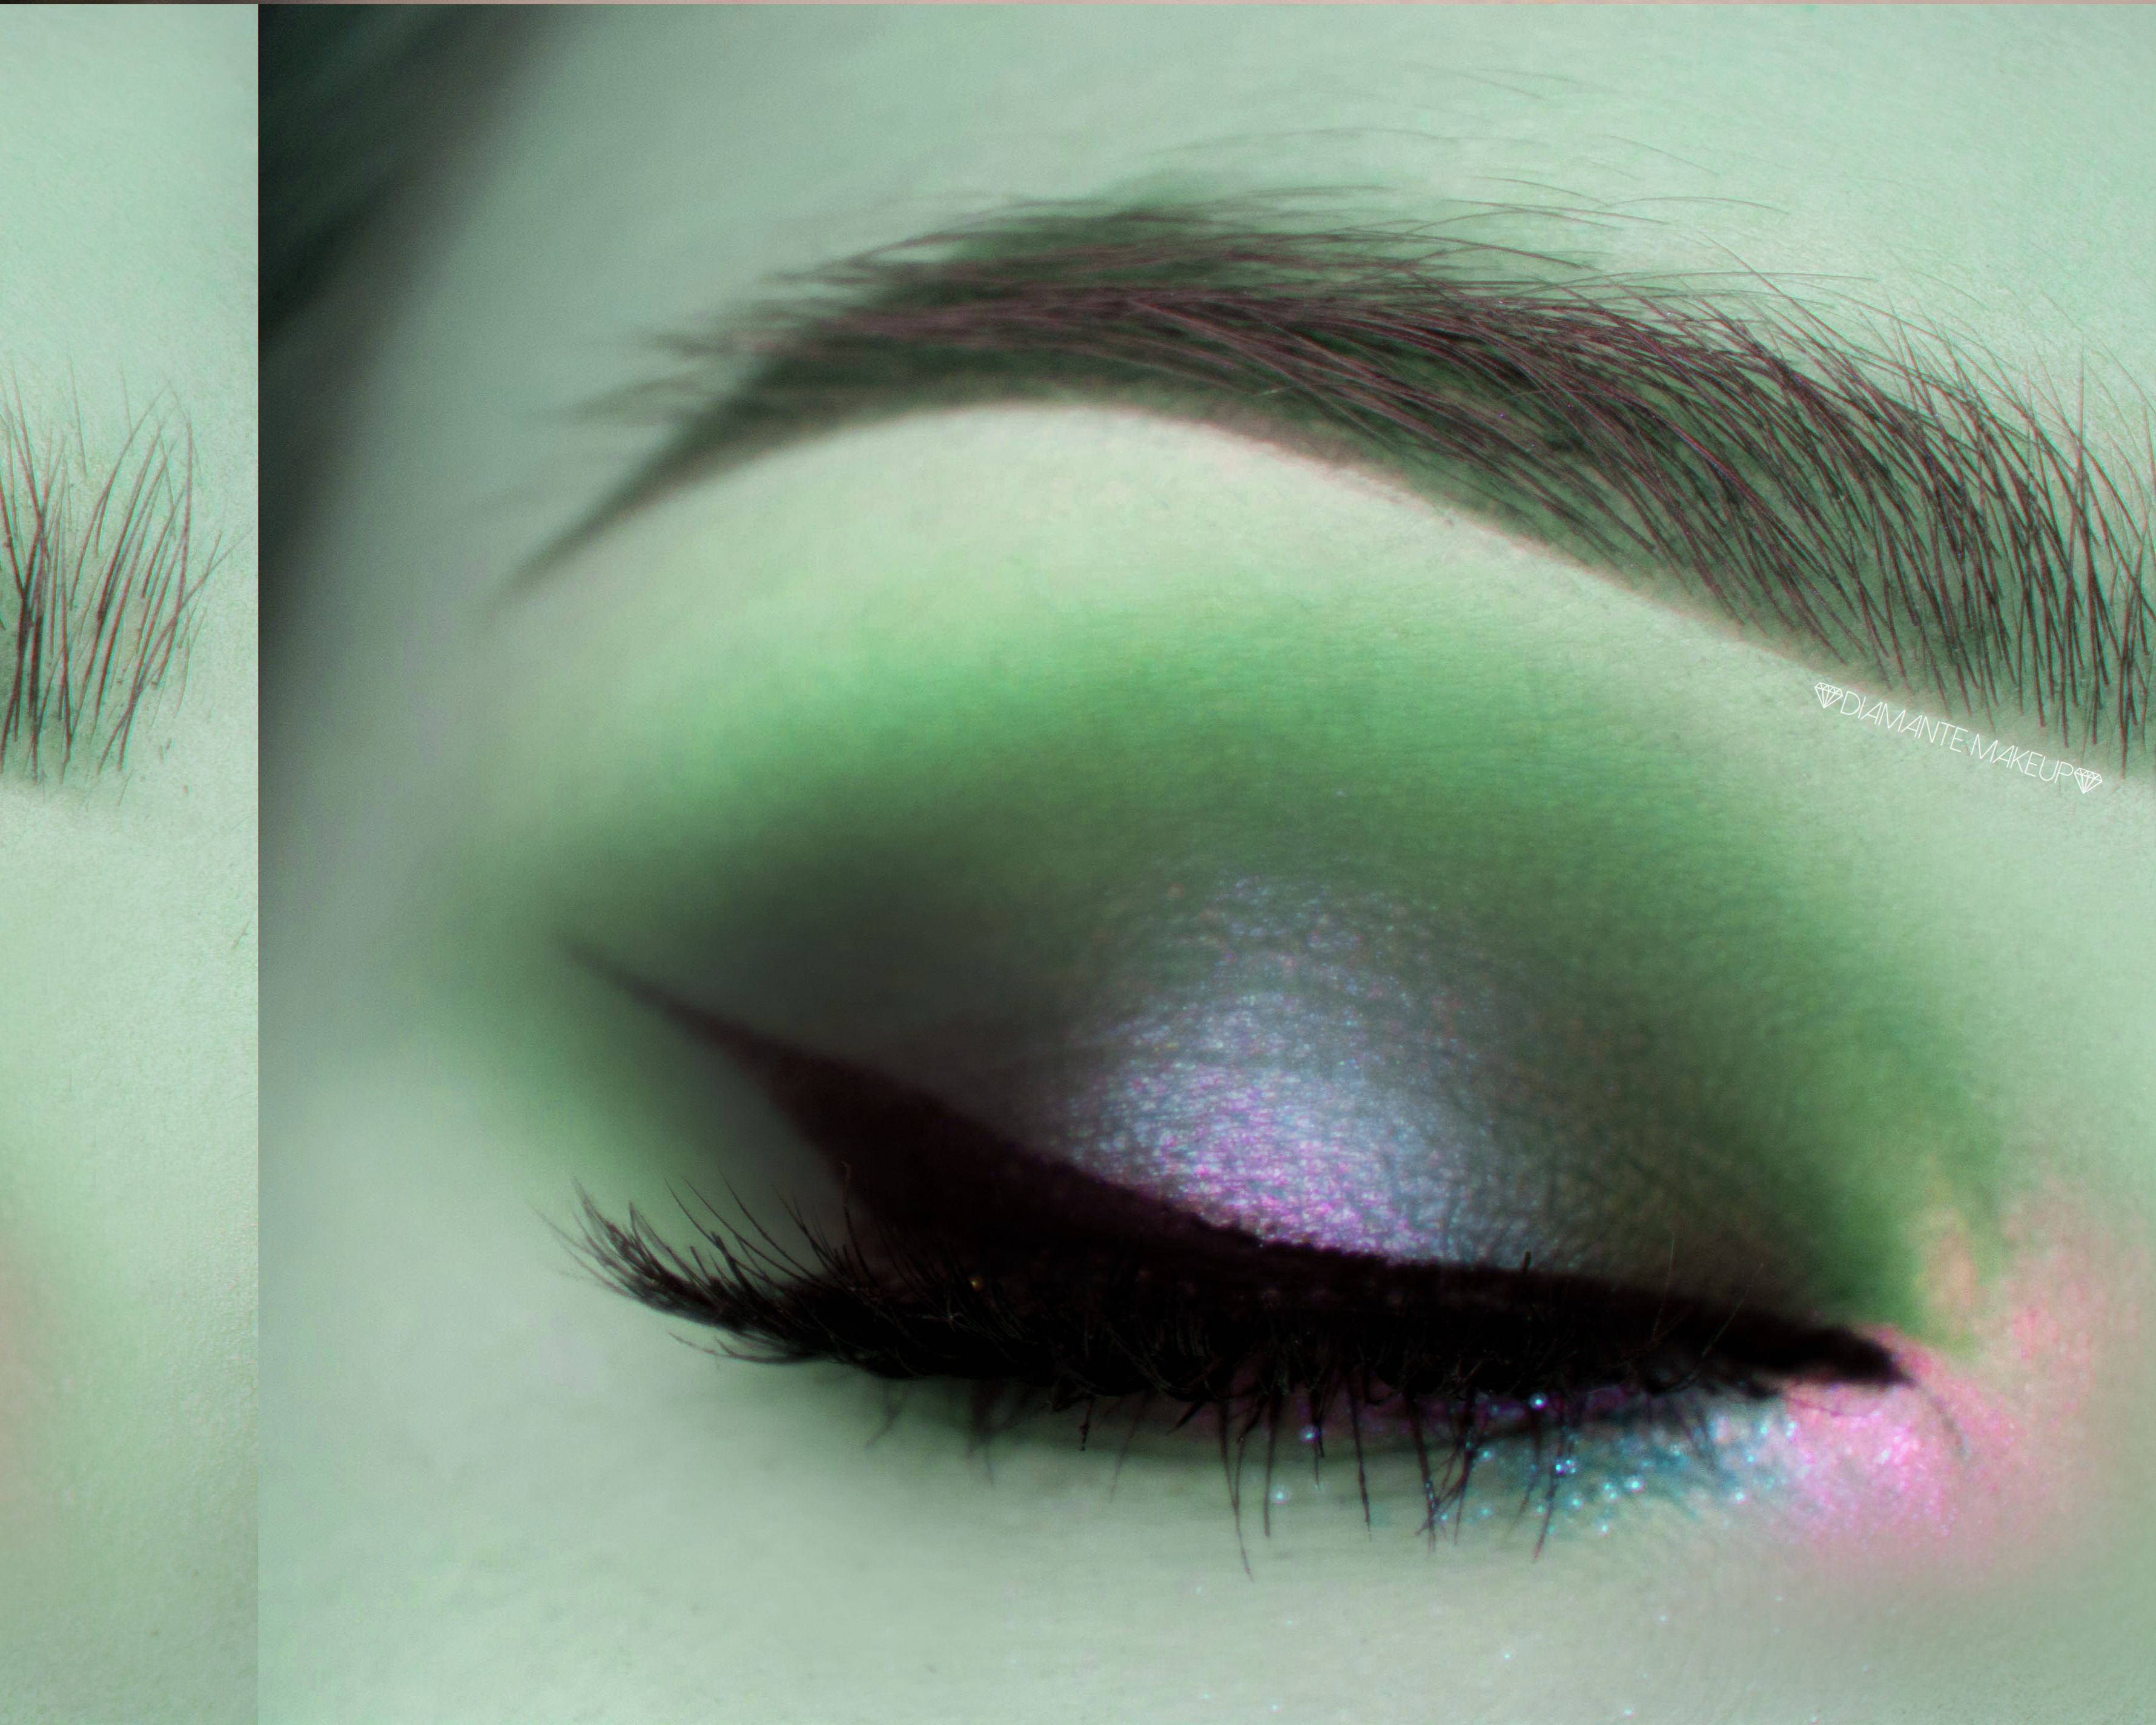 Carnival makeup tutorial makeup geek make up pinterest watch makeup video tutorials learn tips from the experts and even buy our makeup online all items ship worldwide and are paraben free baditri Image collections